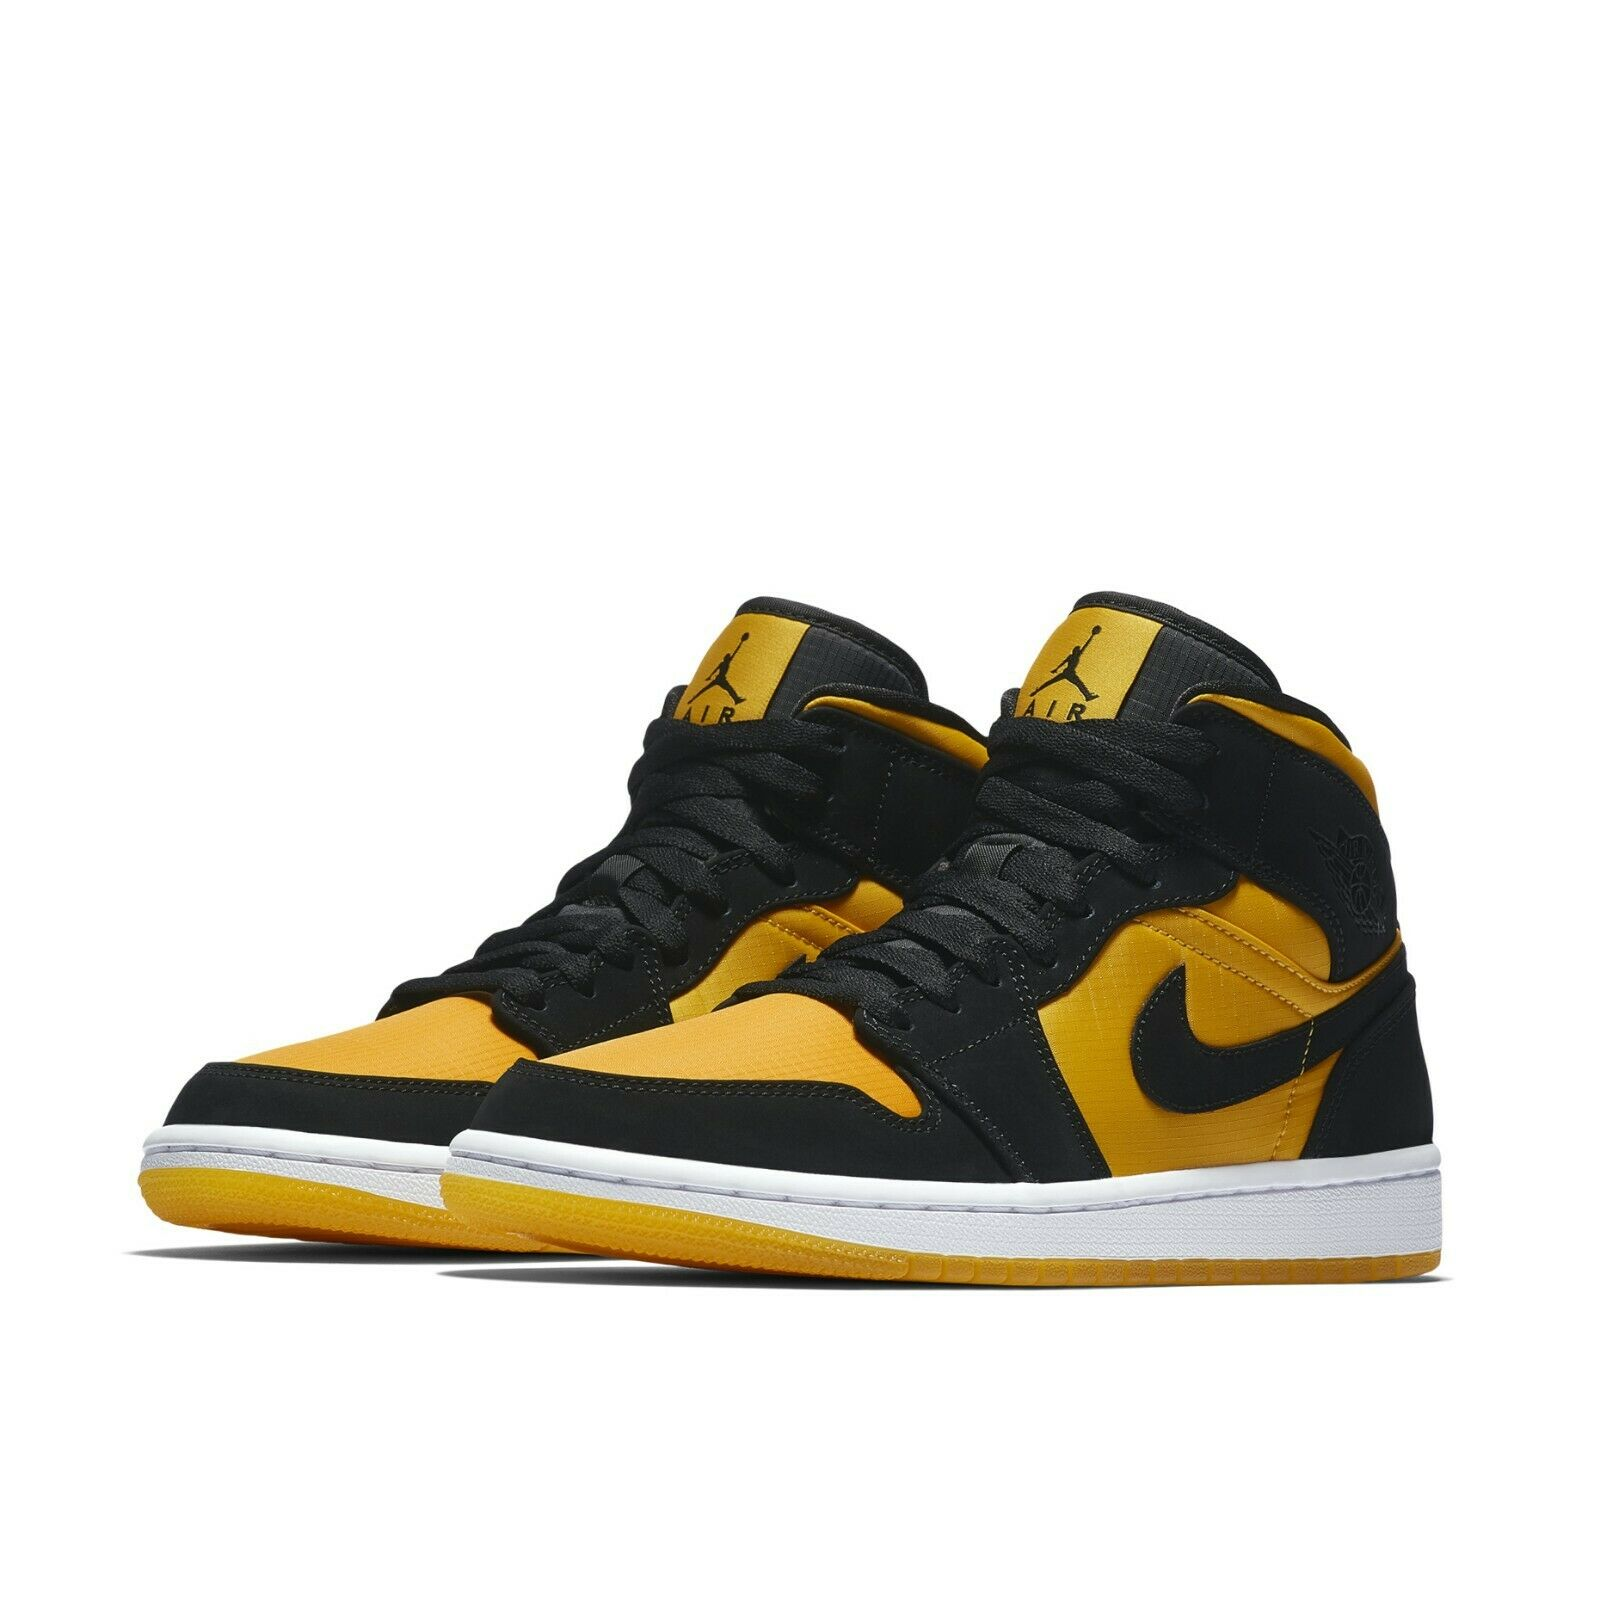 best service 4d65a d8bfd Details about Nike Air Jordan 1 Mid SE GC University Gold Black Yellow Taxi  AJ1 CD6759-007